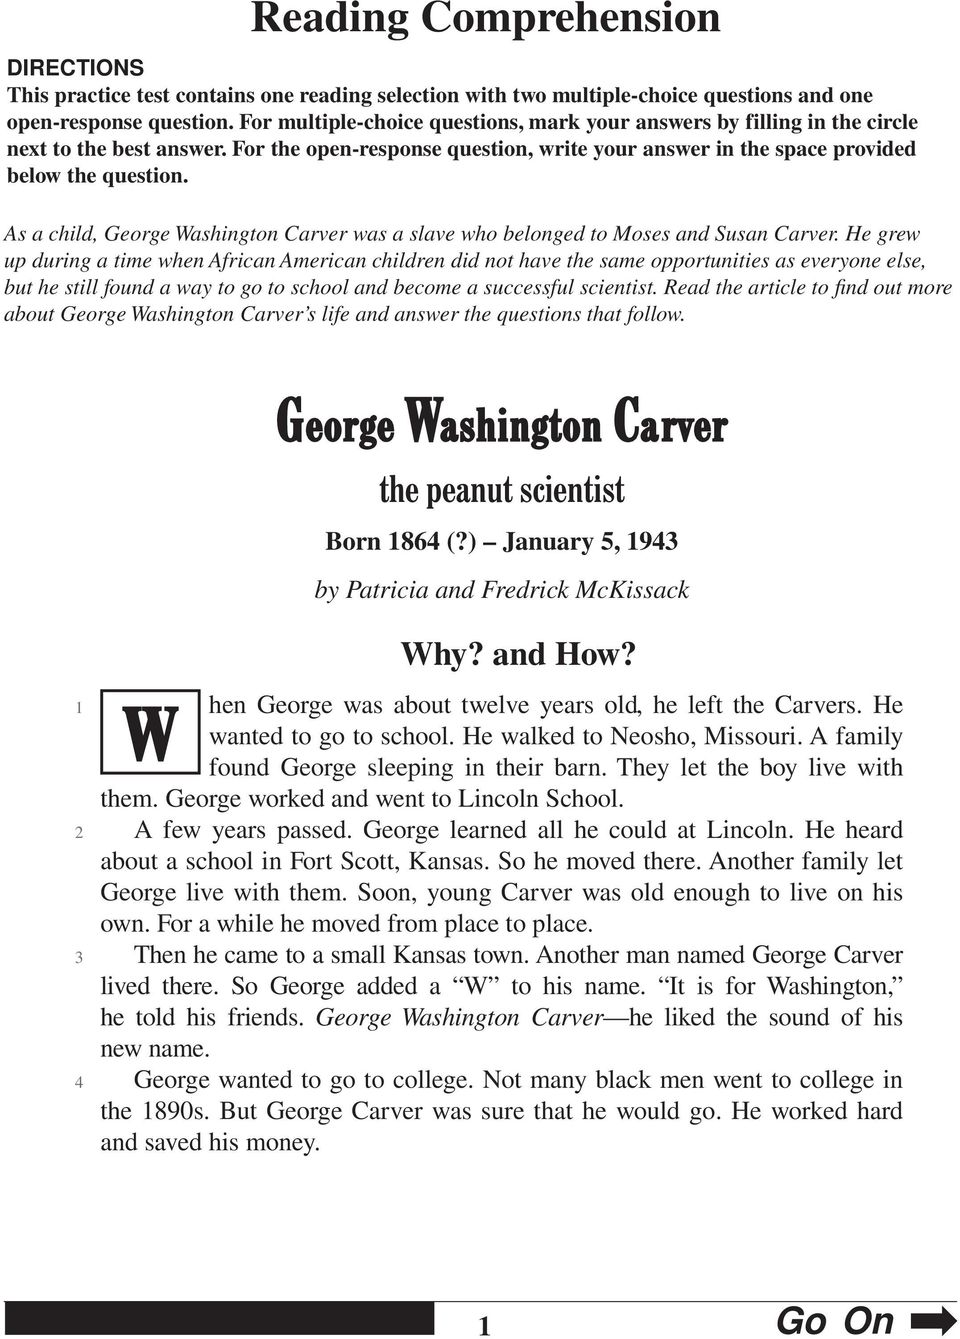 As a child, George Washington Carver was a slave who belonged to Moses and Susan Carver.